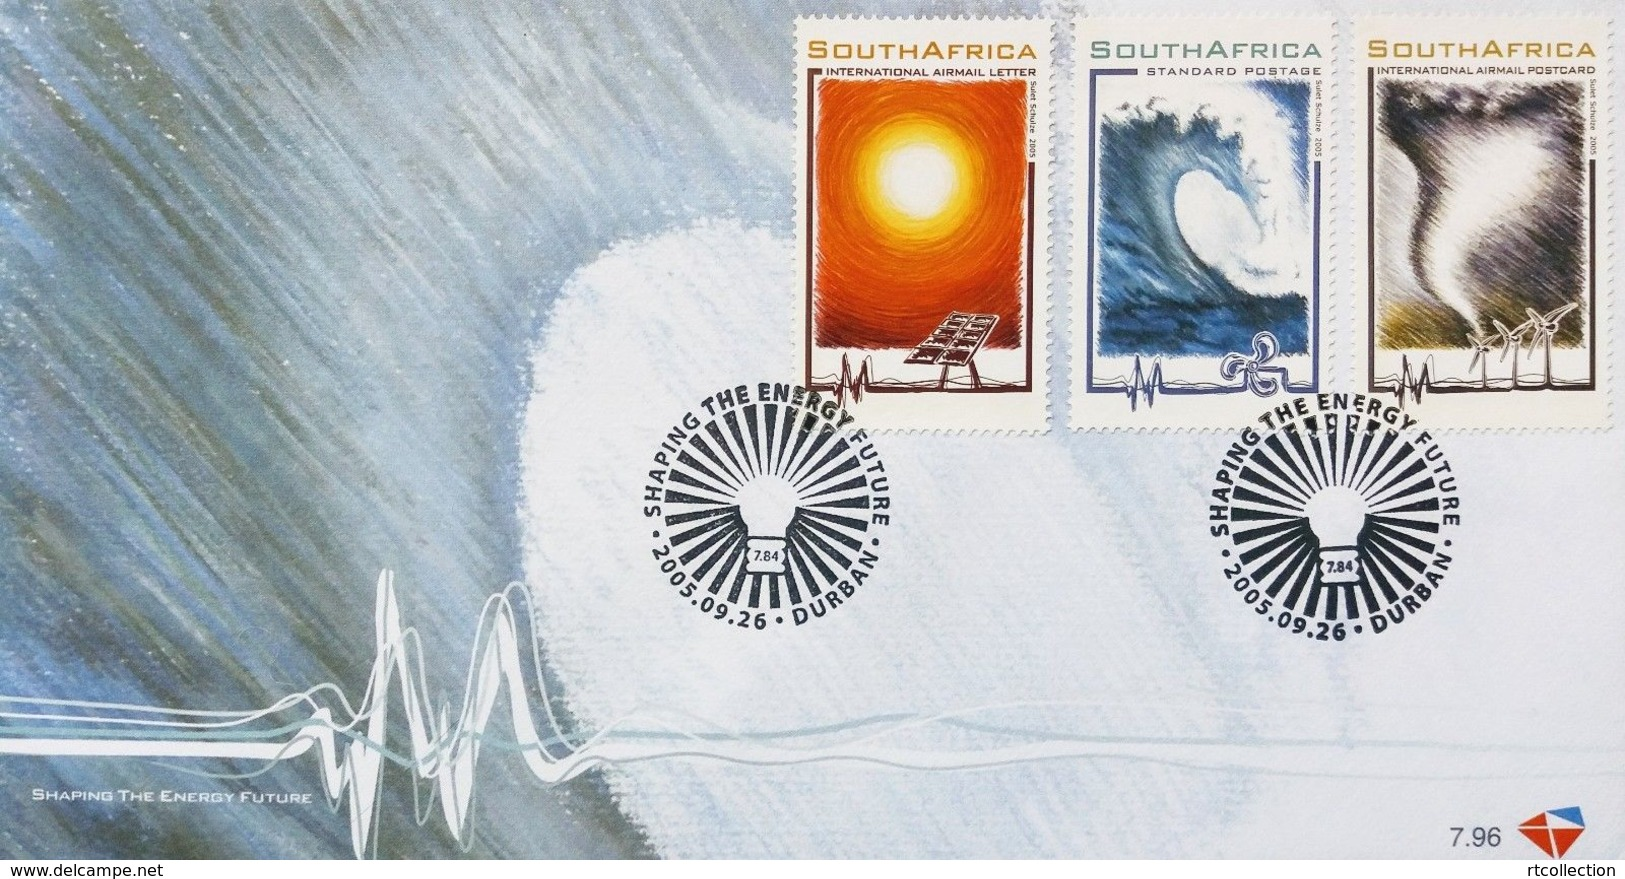 South Africa RSA 2005 FDC Renewable Energy Sources Shaping Future Solar Wind Water Nature Environment 26/9/2005 Stamps - Environment & Climate Protection